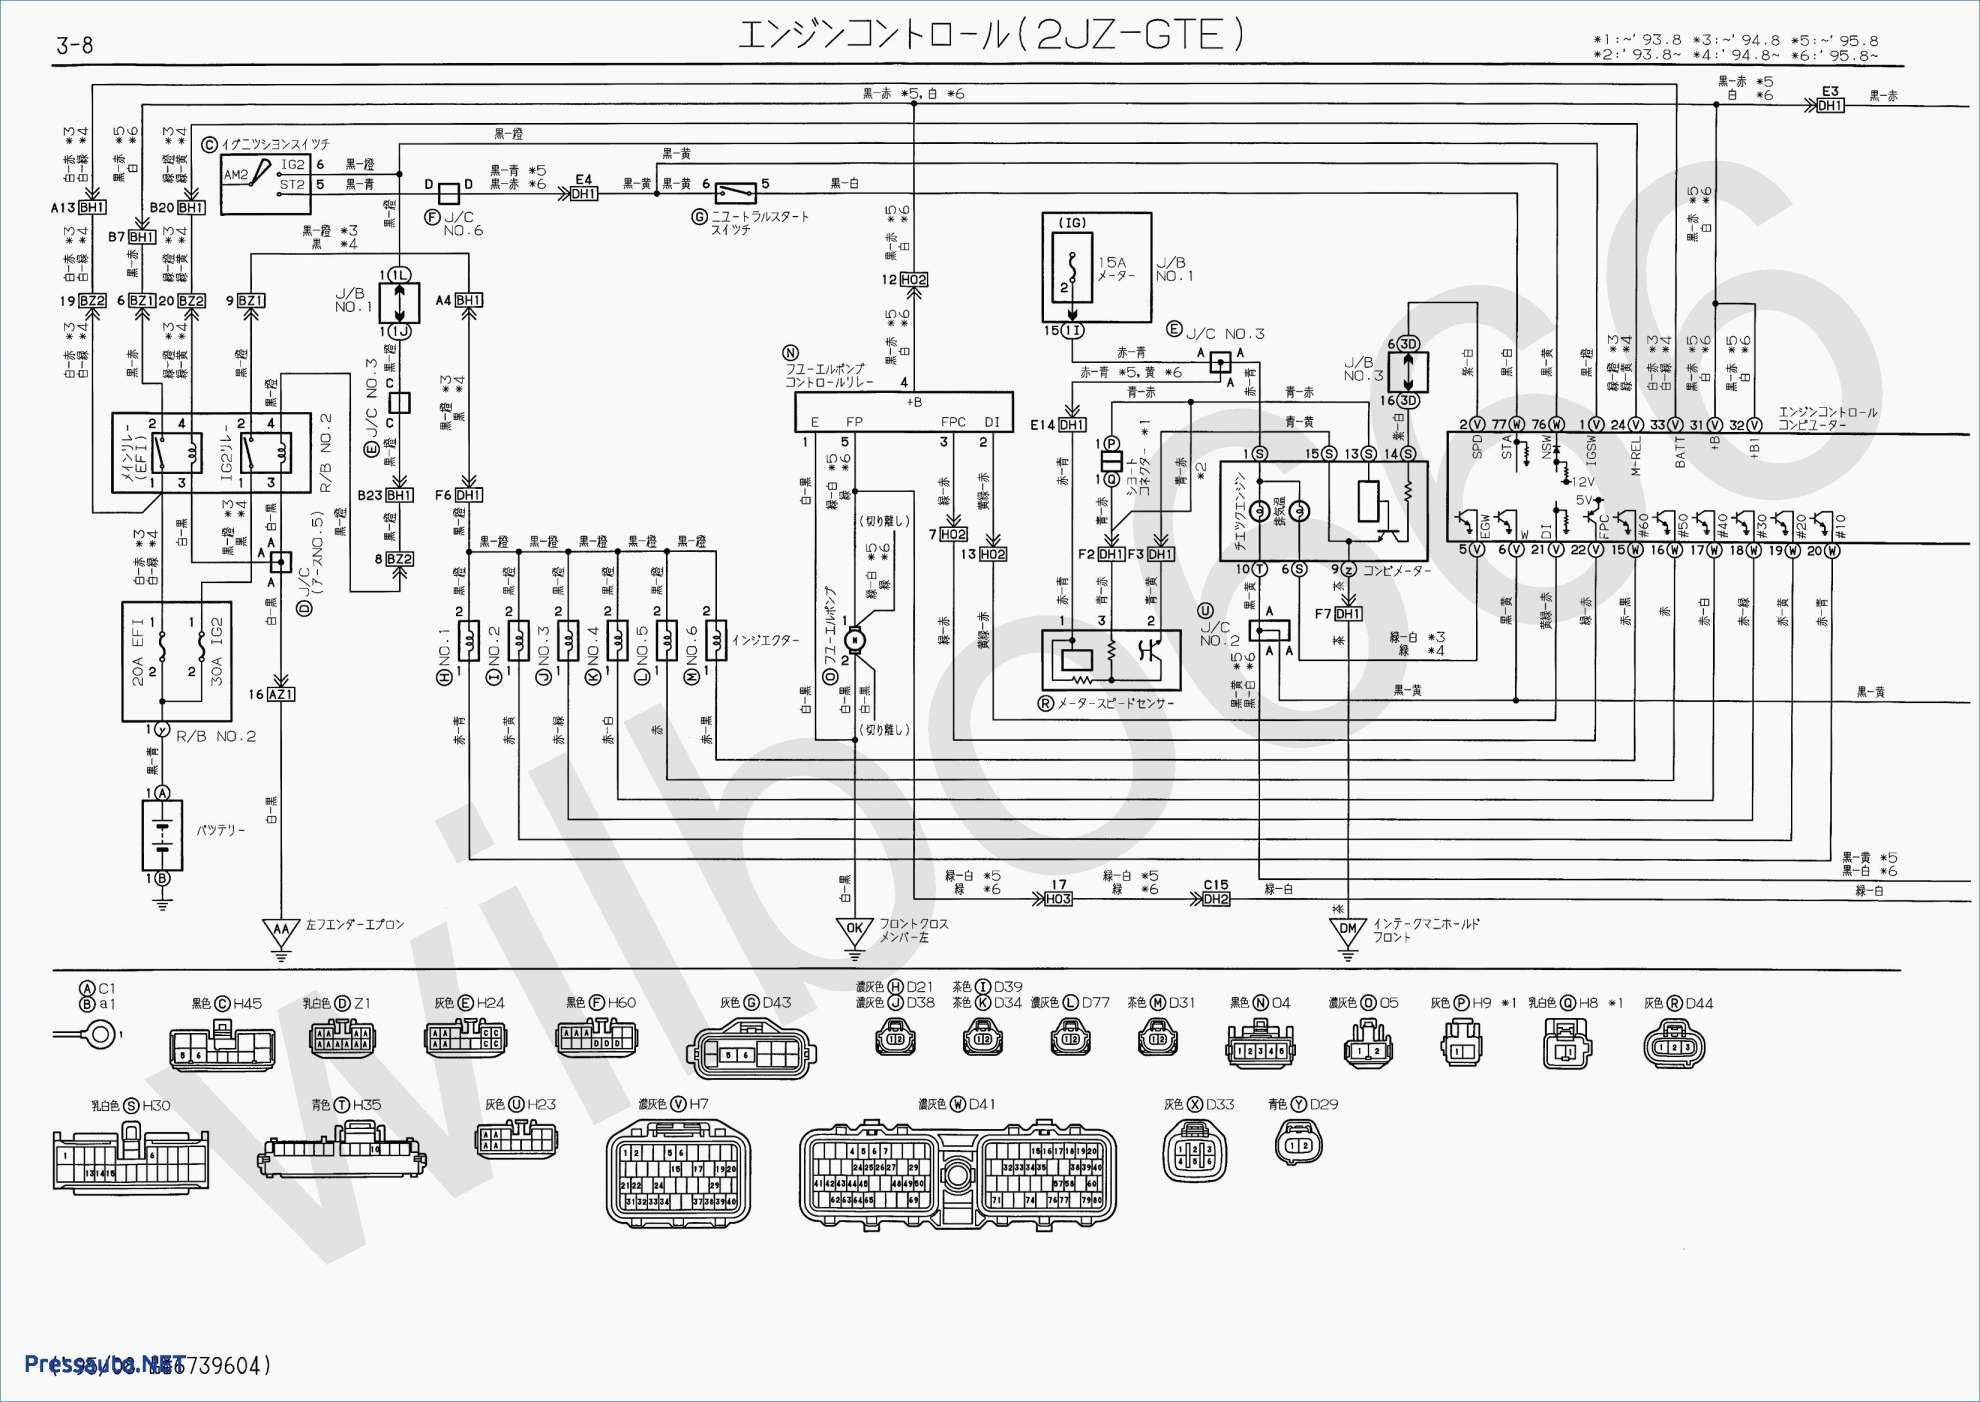 [DIAGRAM_5UK]  12+ 1Kz Engine Ecu Wiring Diagram - Engine Diagram in 2020 | Diagram, Car  ecu, Ecu | Lexus Is200 Wiring Diagrams Pdf |  | Pinterest